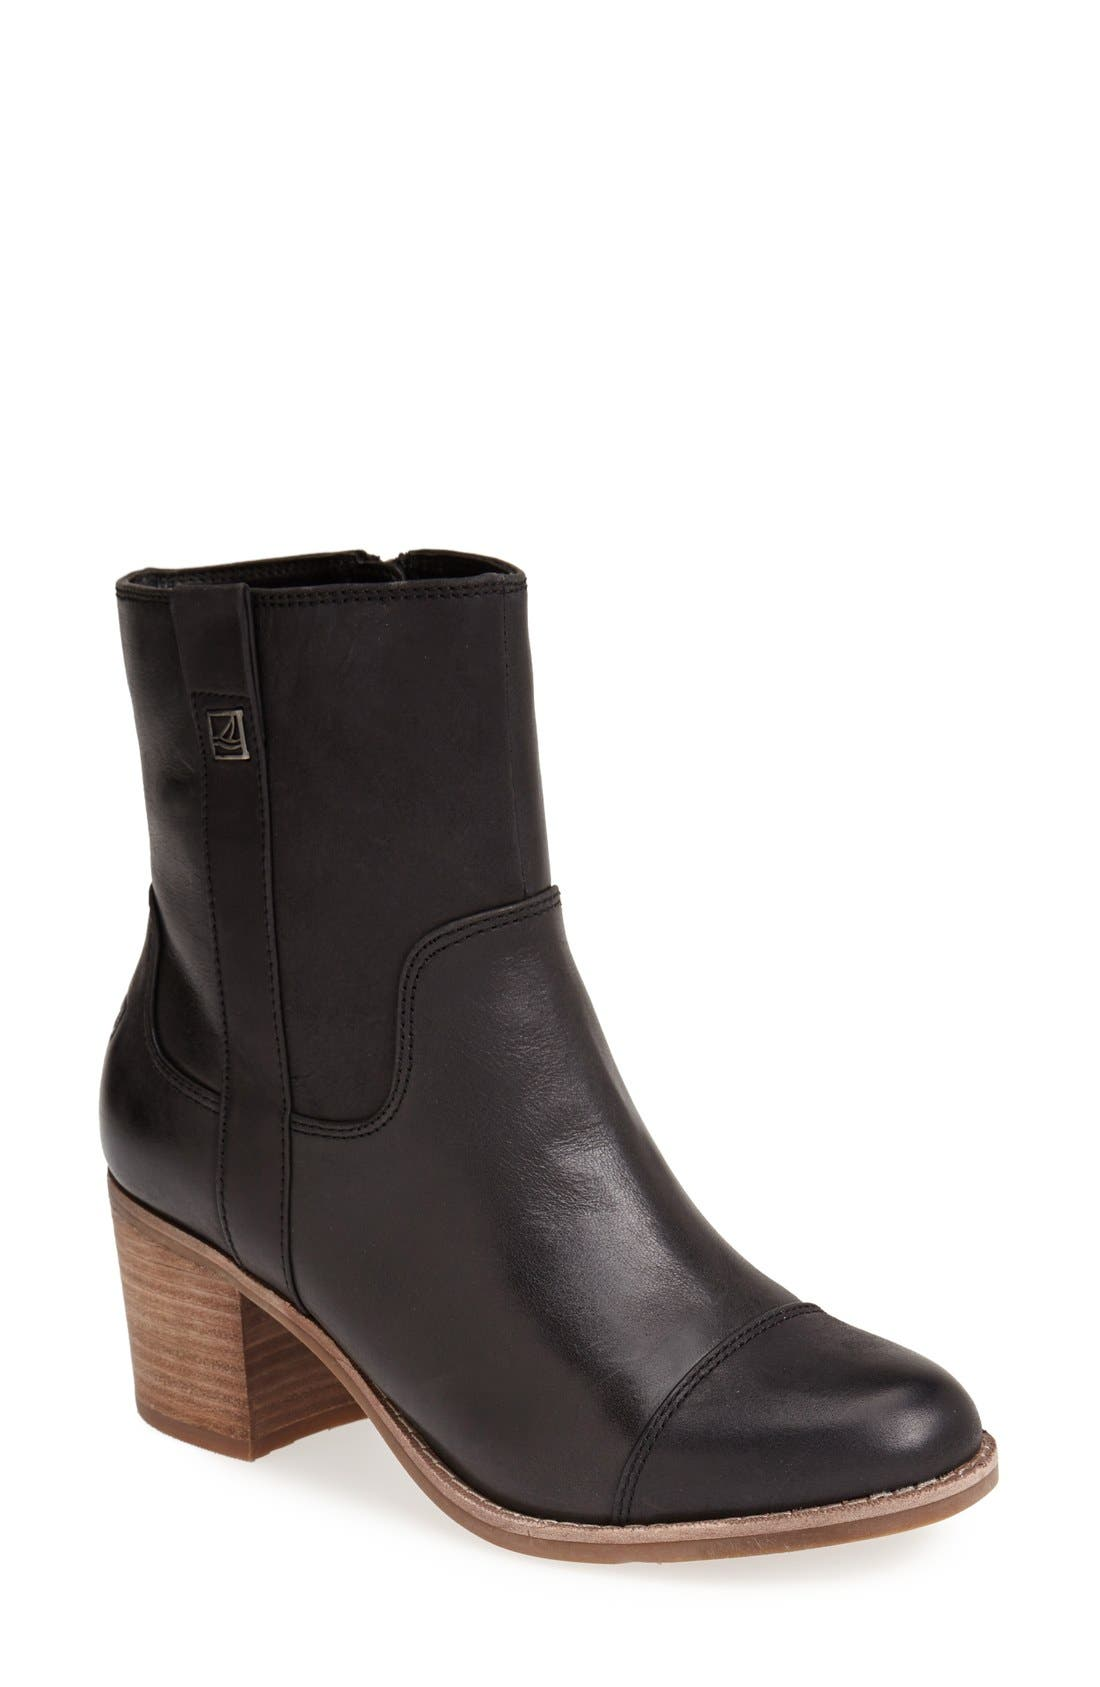 Alternate Image 1 Selected - Sperry Top-Sider® 'Helena' Boot (Women)